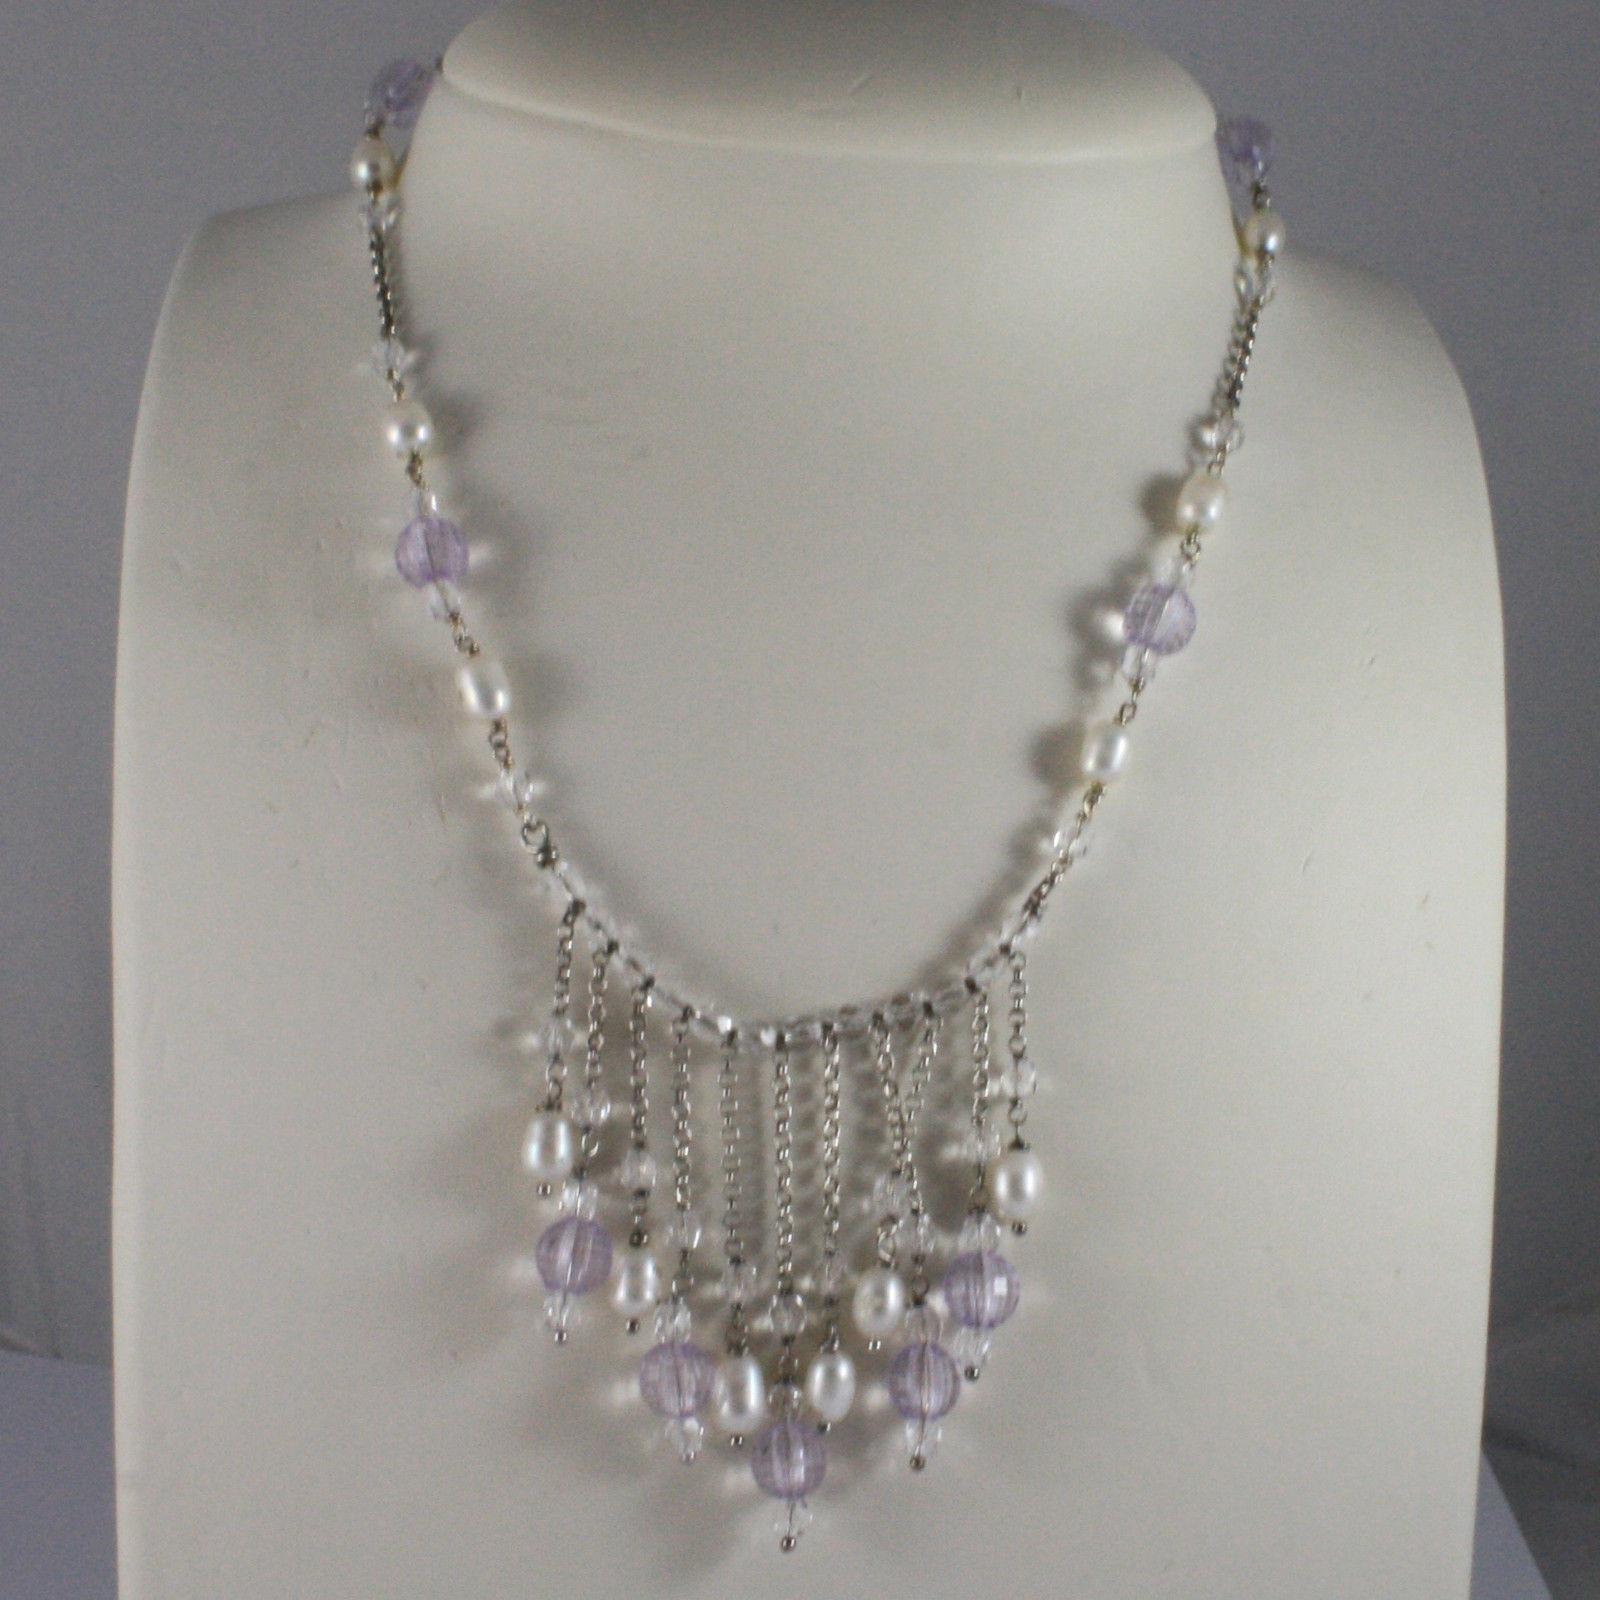 .925 SILVER RHODIUM NECKLACE WITH WHITE PEARLS AND TRANSPARENT AND LILAC CRISTAL